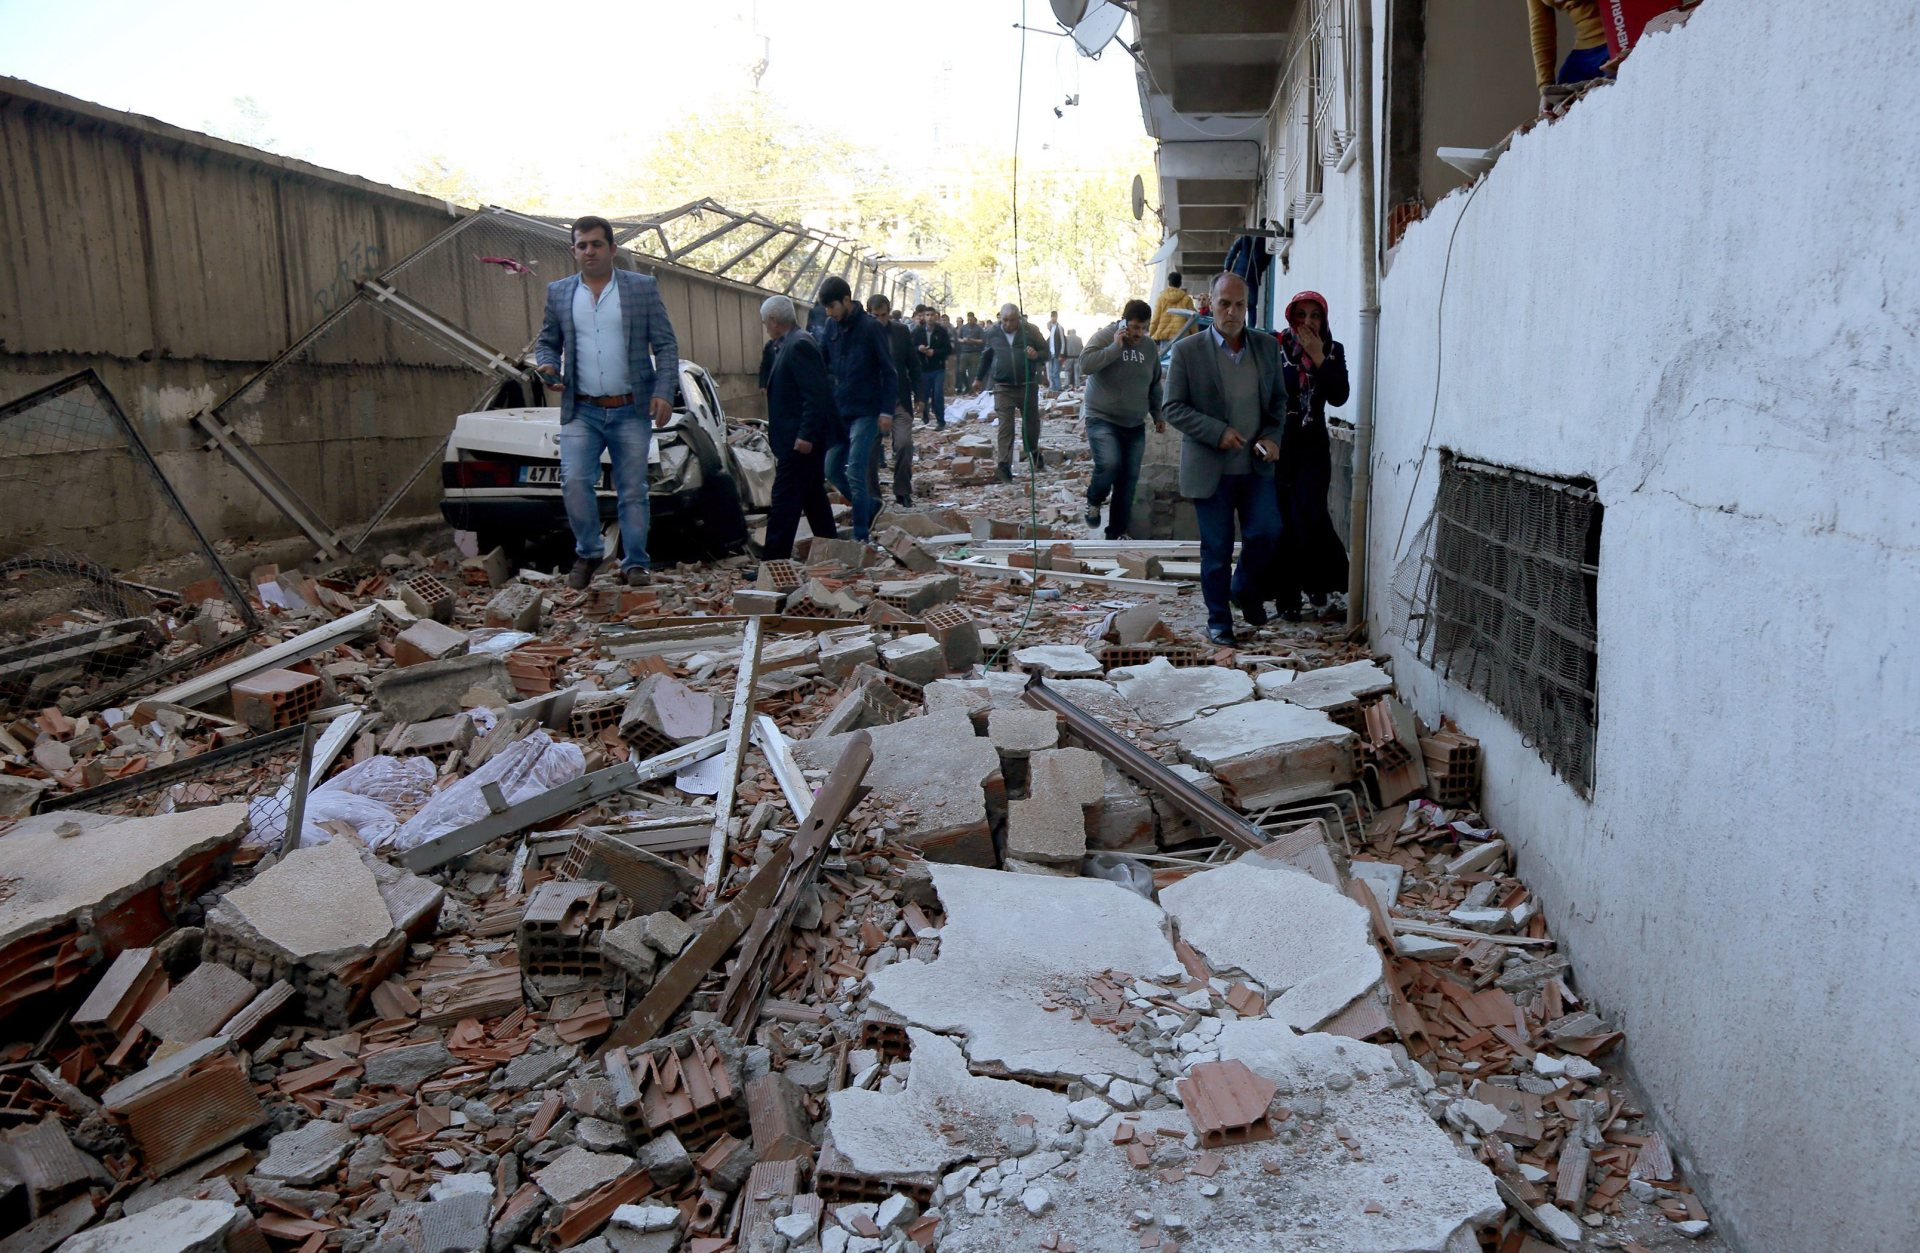 epa05617078 People look at damage caused by an explosion in Diyarbakir, Turkey, 04 November 2016. Media reports state that at least one person was killed and several others injured. The blast targeting a police station was reported to have happened just hours after the arrest of the co-leaders of the pro-Kurdish and pro-minority political party Peoples' Democratic Party (HDP) Figen Yuksekdag and Selahattin Demirtas and at least nine other members of parliament as part of a counter-terrorism investigation following a police raid in the HDP party headquarters in Ankara. The HDP is accused by the Turkish government to have links with the Kurdistan Workers' Party (PKK) militant group, an accusation HDP strongly denies.  EPA/STRINGER